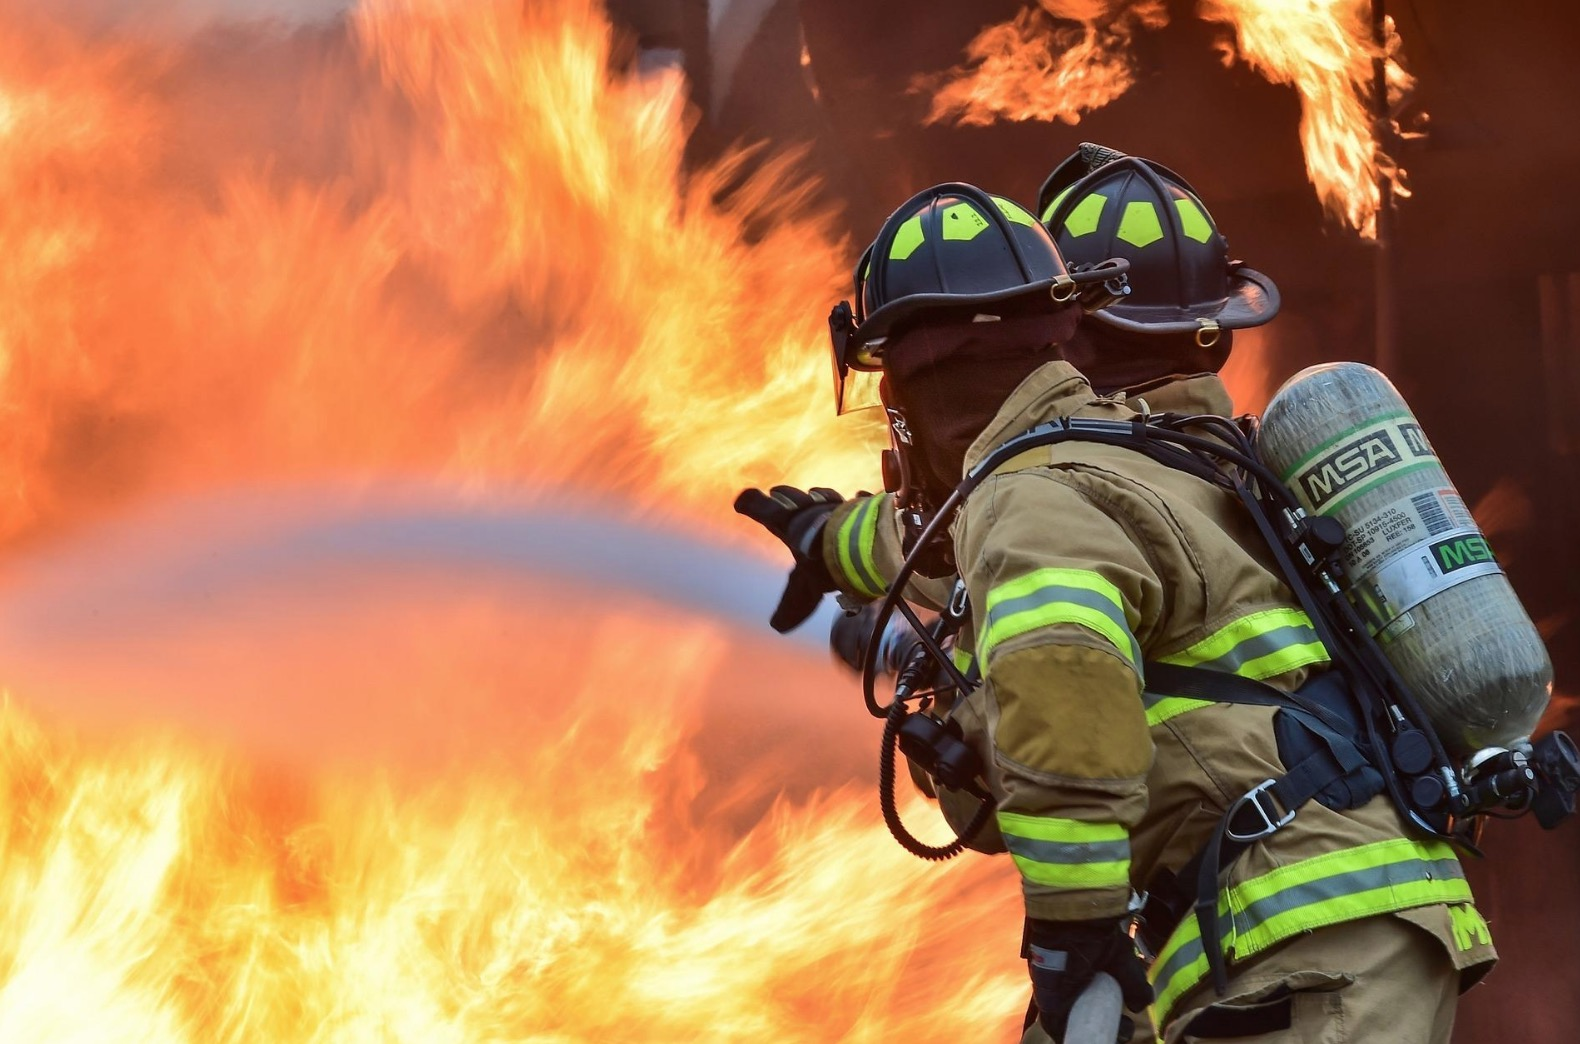 """""""Viable threat"""" made against Firefighters in Florida, stations on lockdown"""